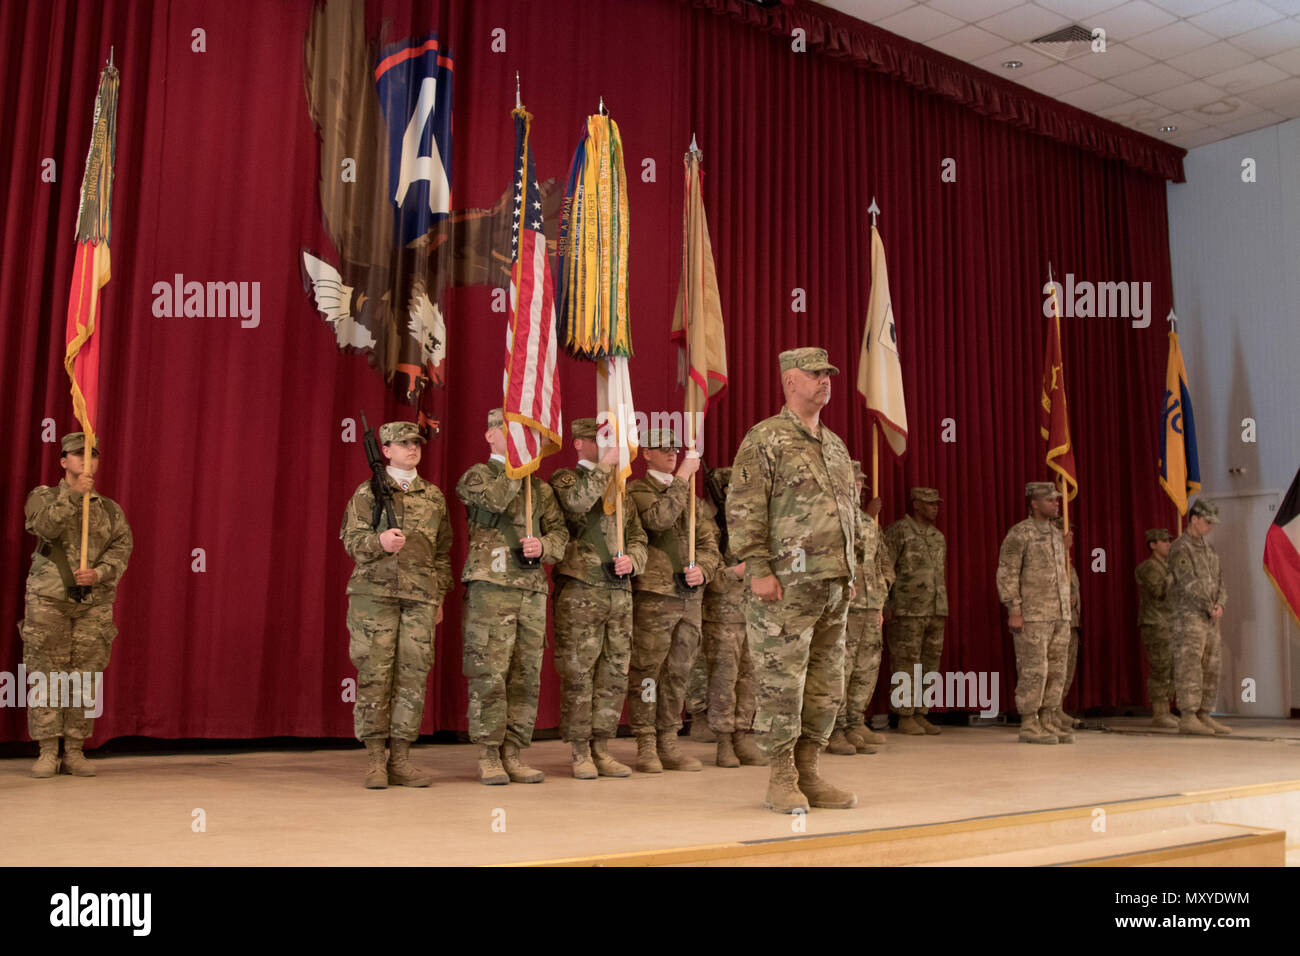 Col. Curtis Henry, the chief of staff of the 316th Sustainment Command (Expeditionary), calls a color guard to attention during a transfer of authority ceremony at Camp Arifjan, Kuwait, Dec. 23, 2016. (U.S. Army Photo by Staff Sgt. Dalton Smith) - Stock Image